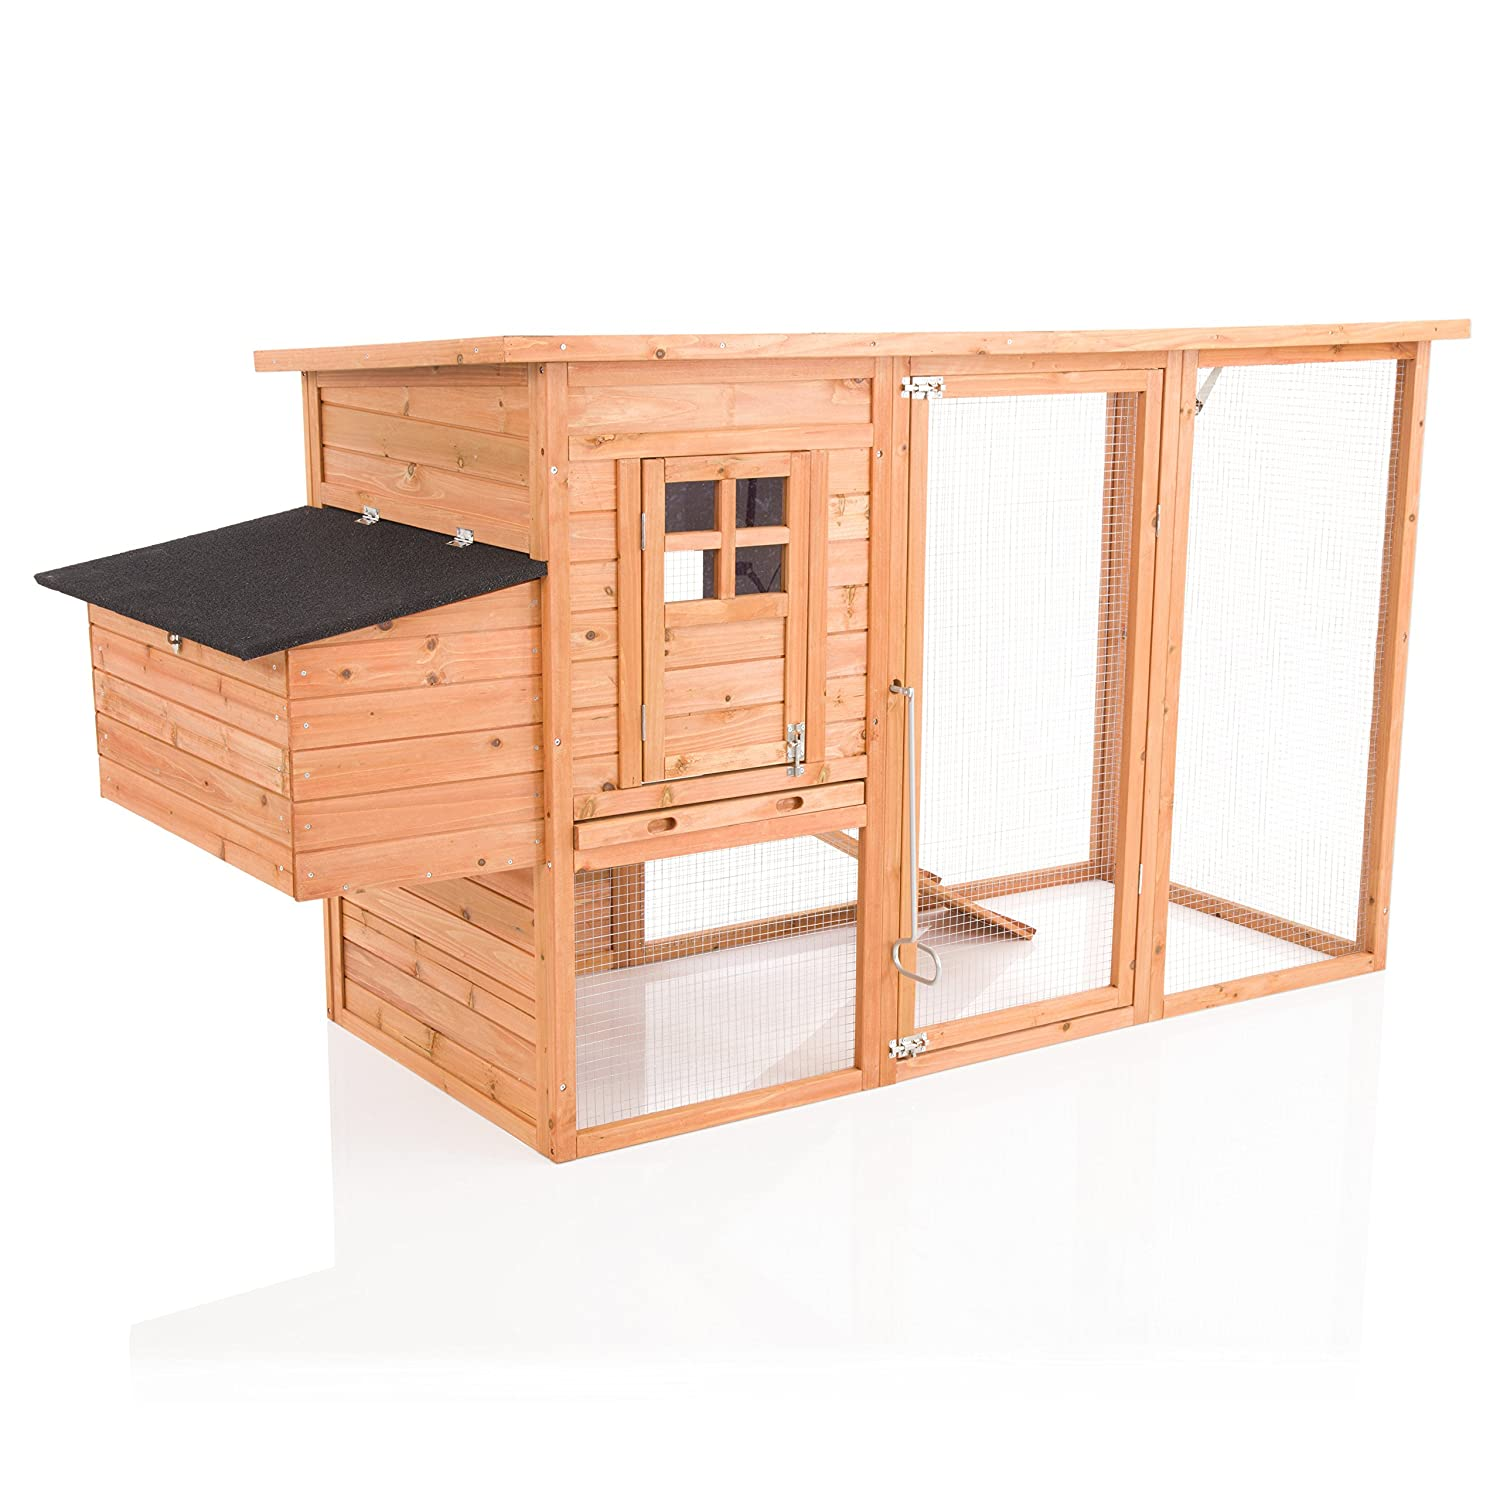 Cozy Pet Chicken Coop with Run By Hen House Poultry Coup Rabbit Hutch Ark Nest Box CC06-N (We do not ship to Northern Ireland, Scottish Highlands & Islands, Channel Islands, IOM or IOW.) Cozy Pet Ltd